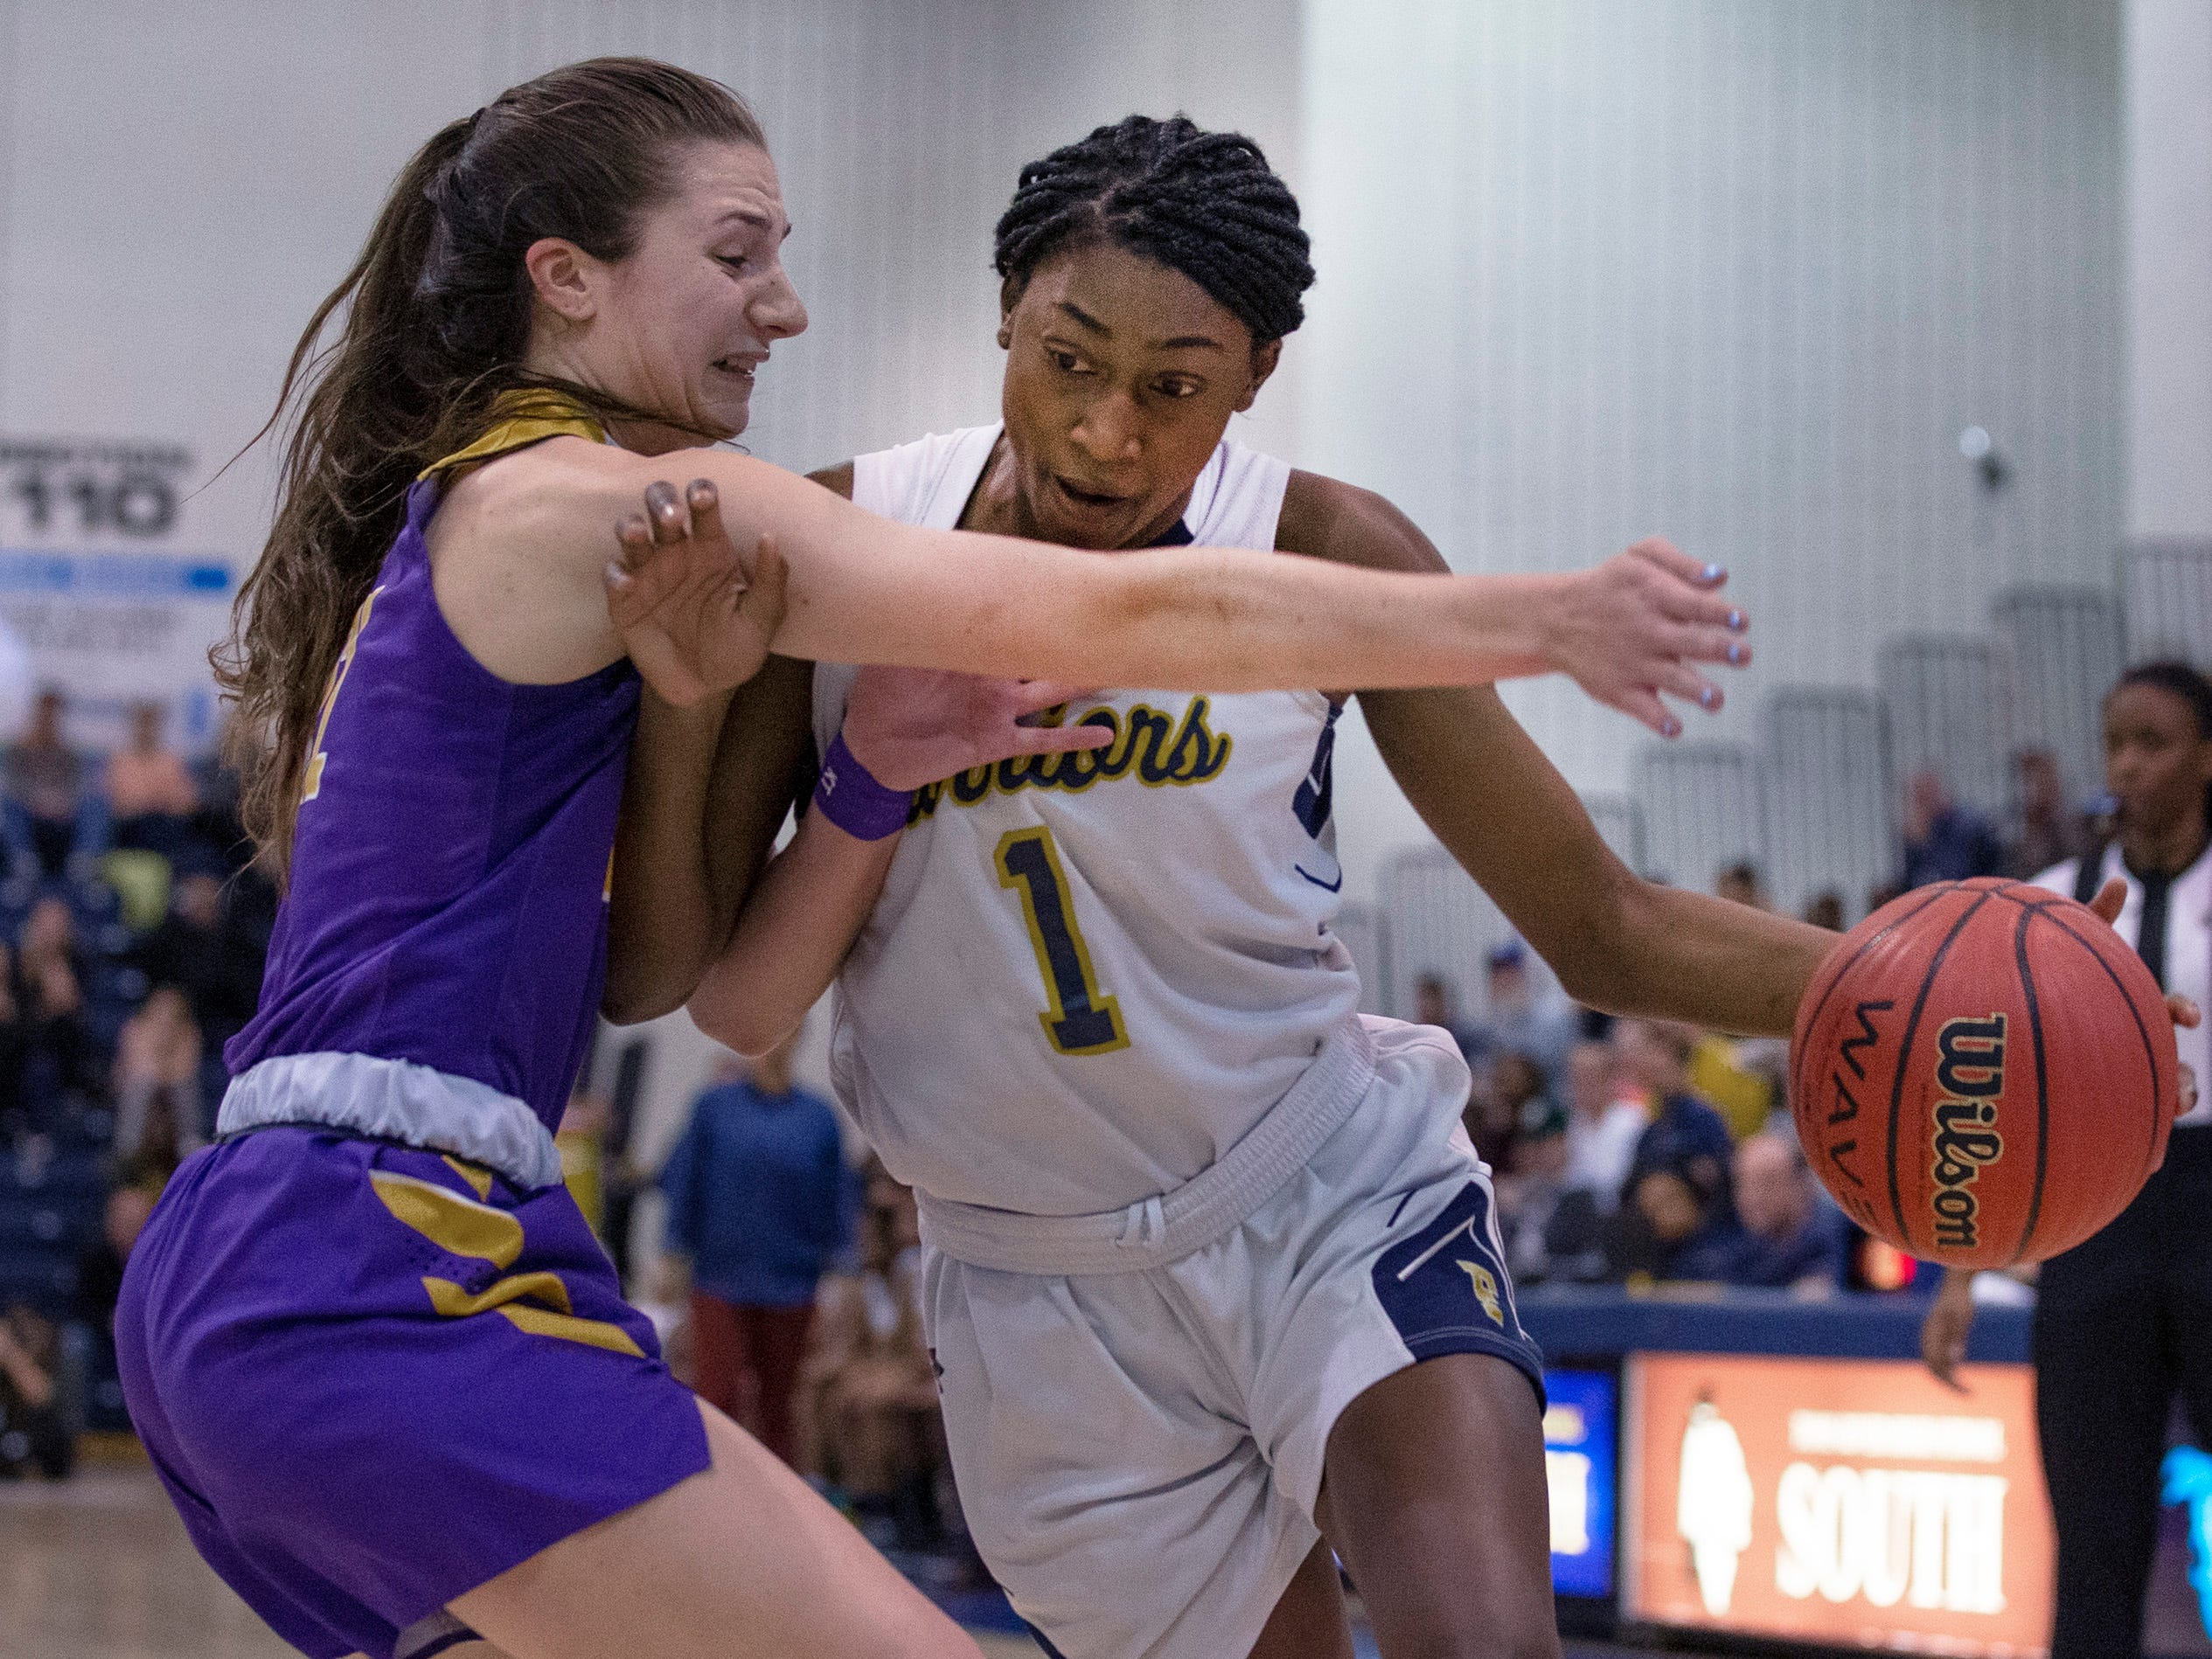 Diamond Miller, Franklin, drives in against Brynn Farrell. St Rose Girls Basketball vs Franklin High School in NJSIAA Tournament of Champions Semifinal in Toms River on March 14, 2019.